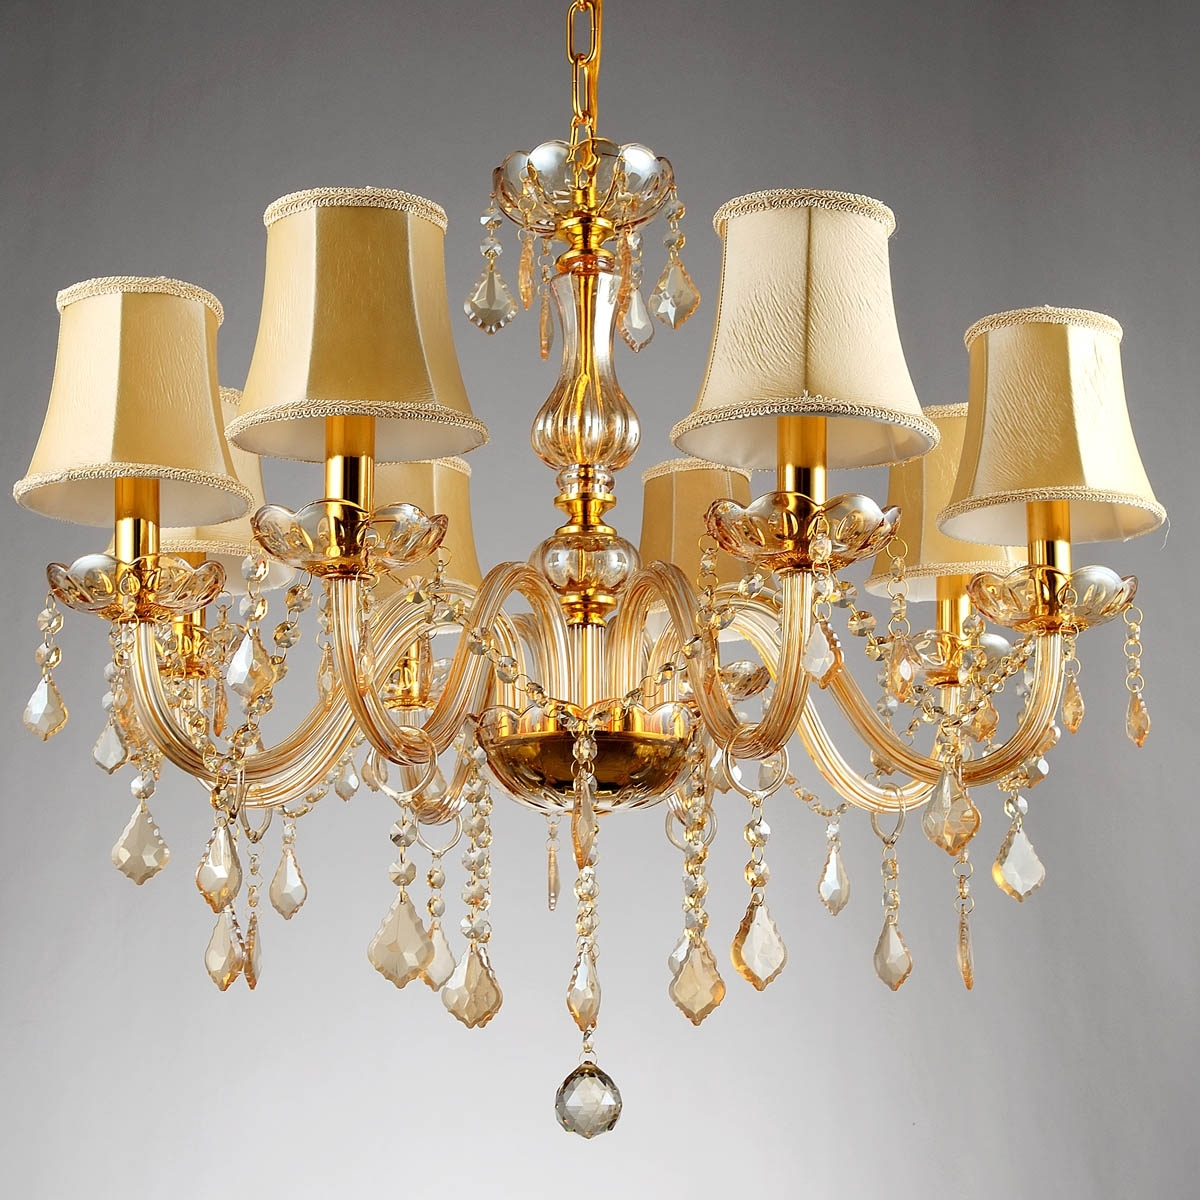 Free Ship 6/8 Arms Fashion Crystal Chandelier Lighting Bedroom Regarding Most Popular Crystal Gold Chandeliers (View 8 of 15)